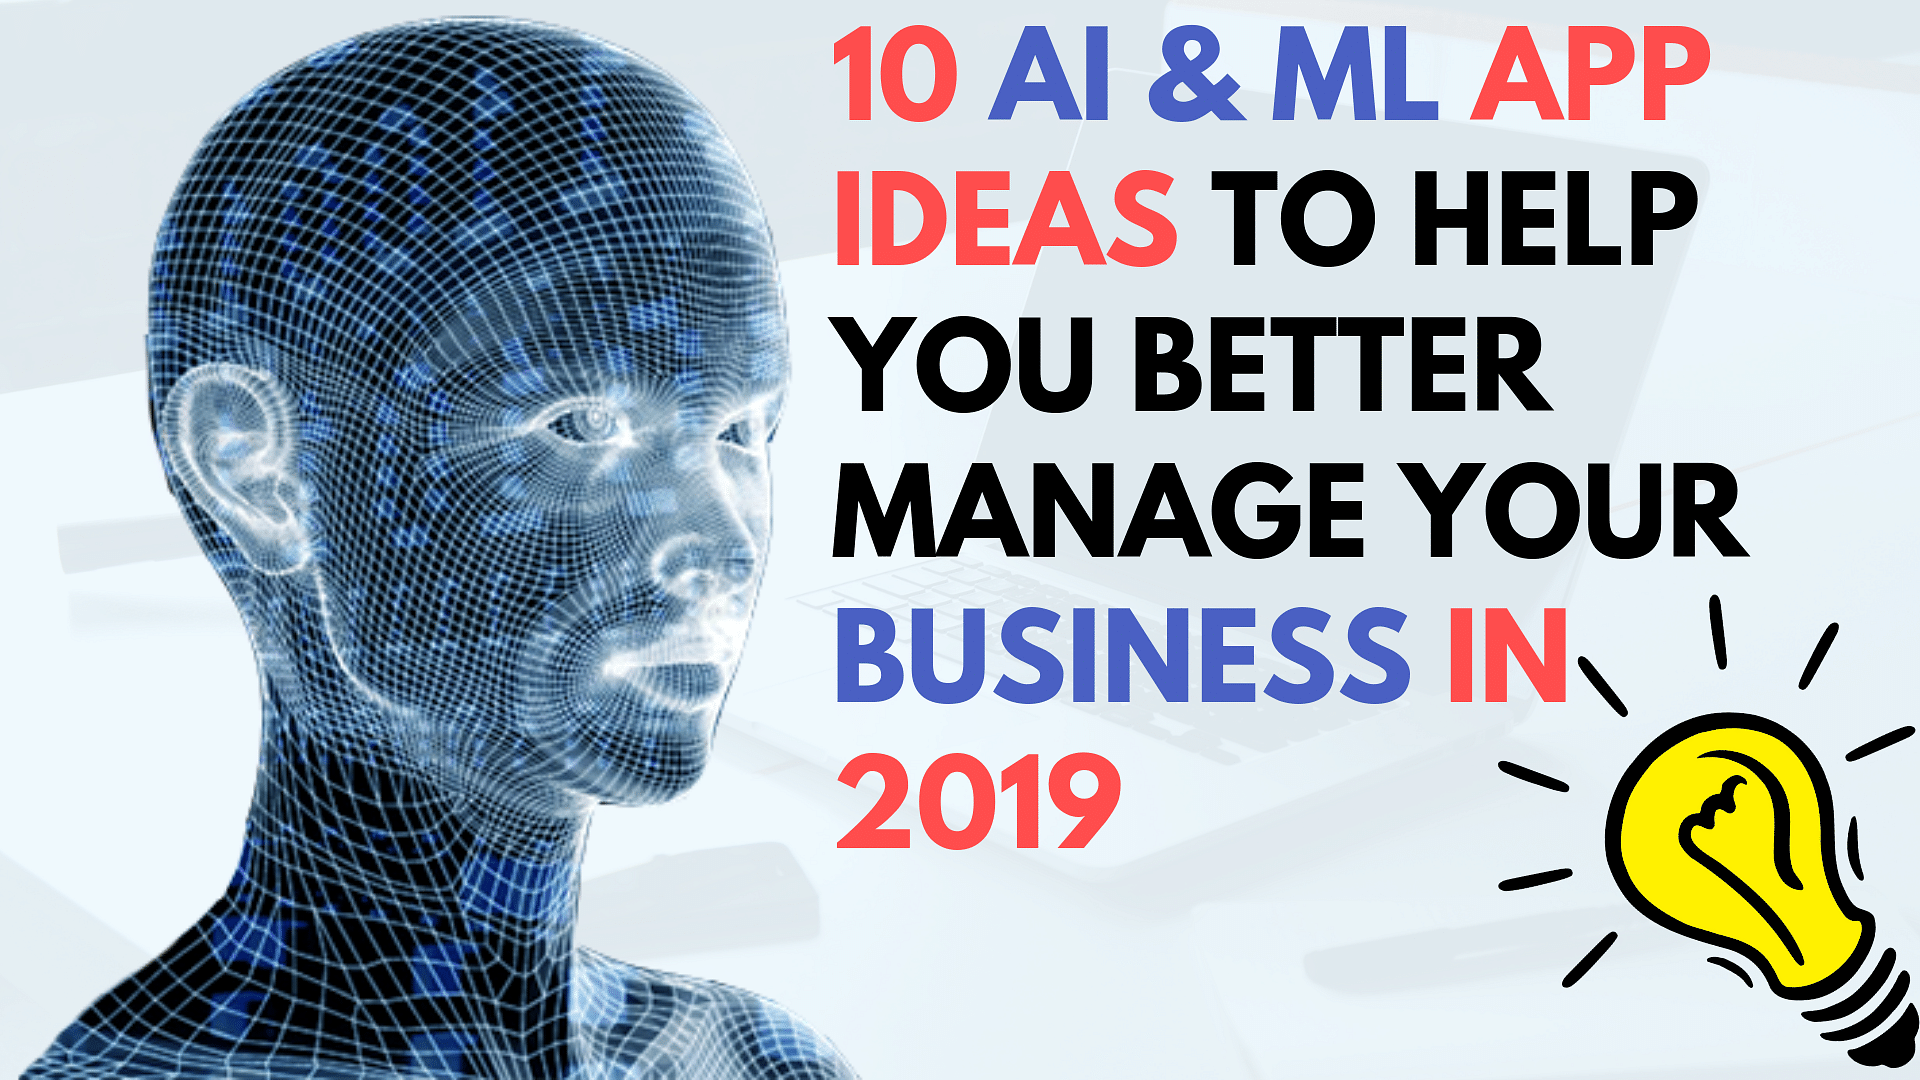 10 AI & ML App Ideas to Help you in Better Business Management - 2019